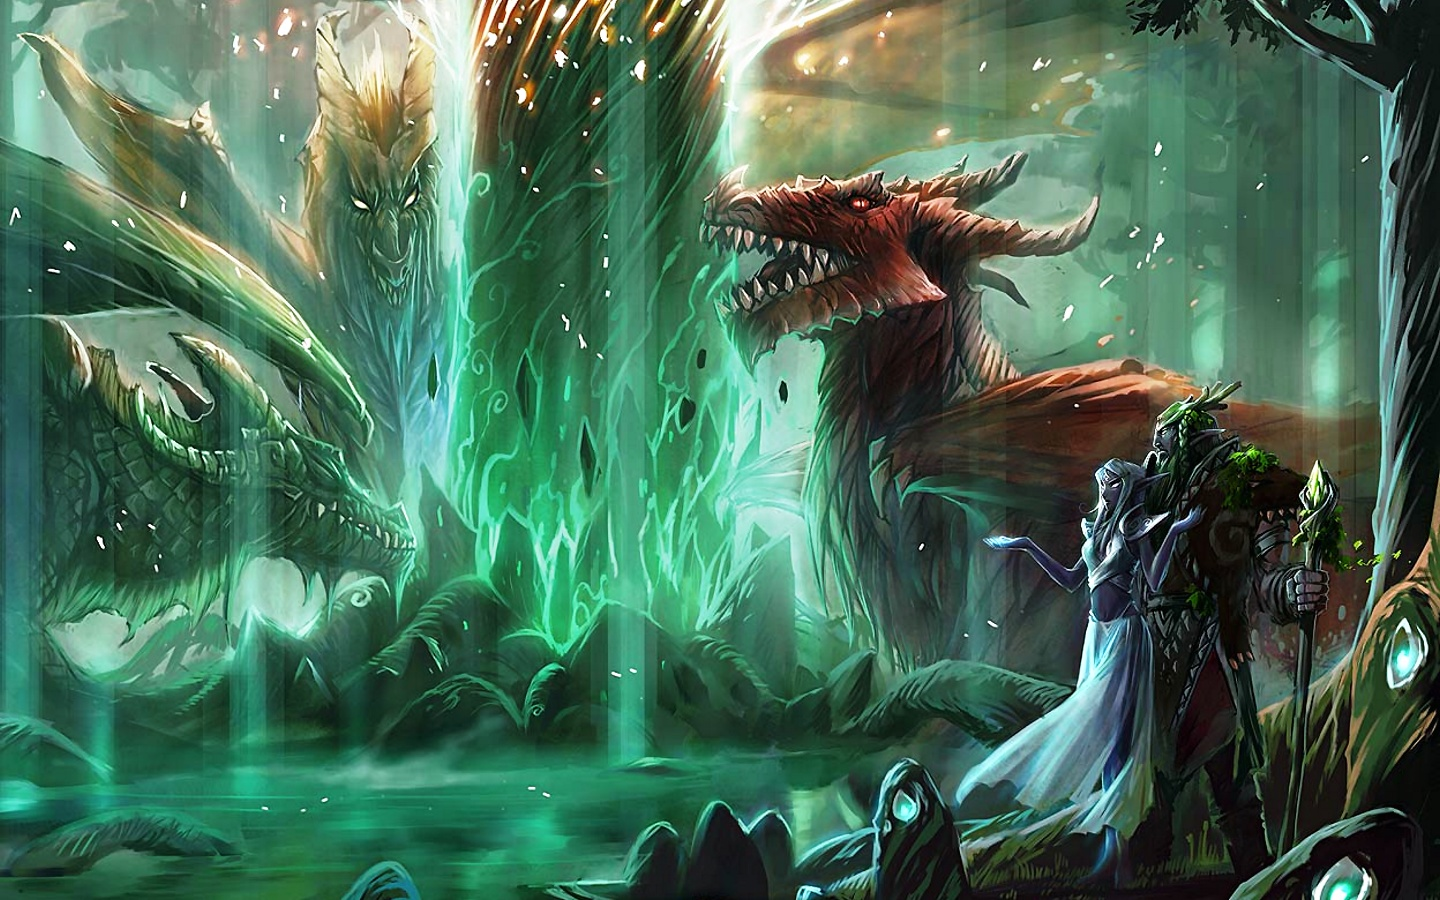 Great Green World of Warcraft game picture with dragons and fire 1440x900